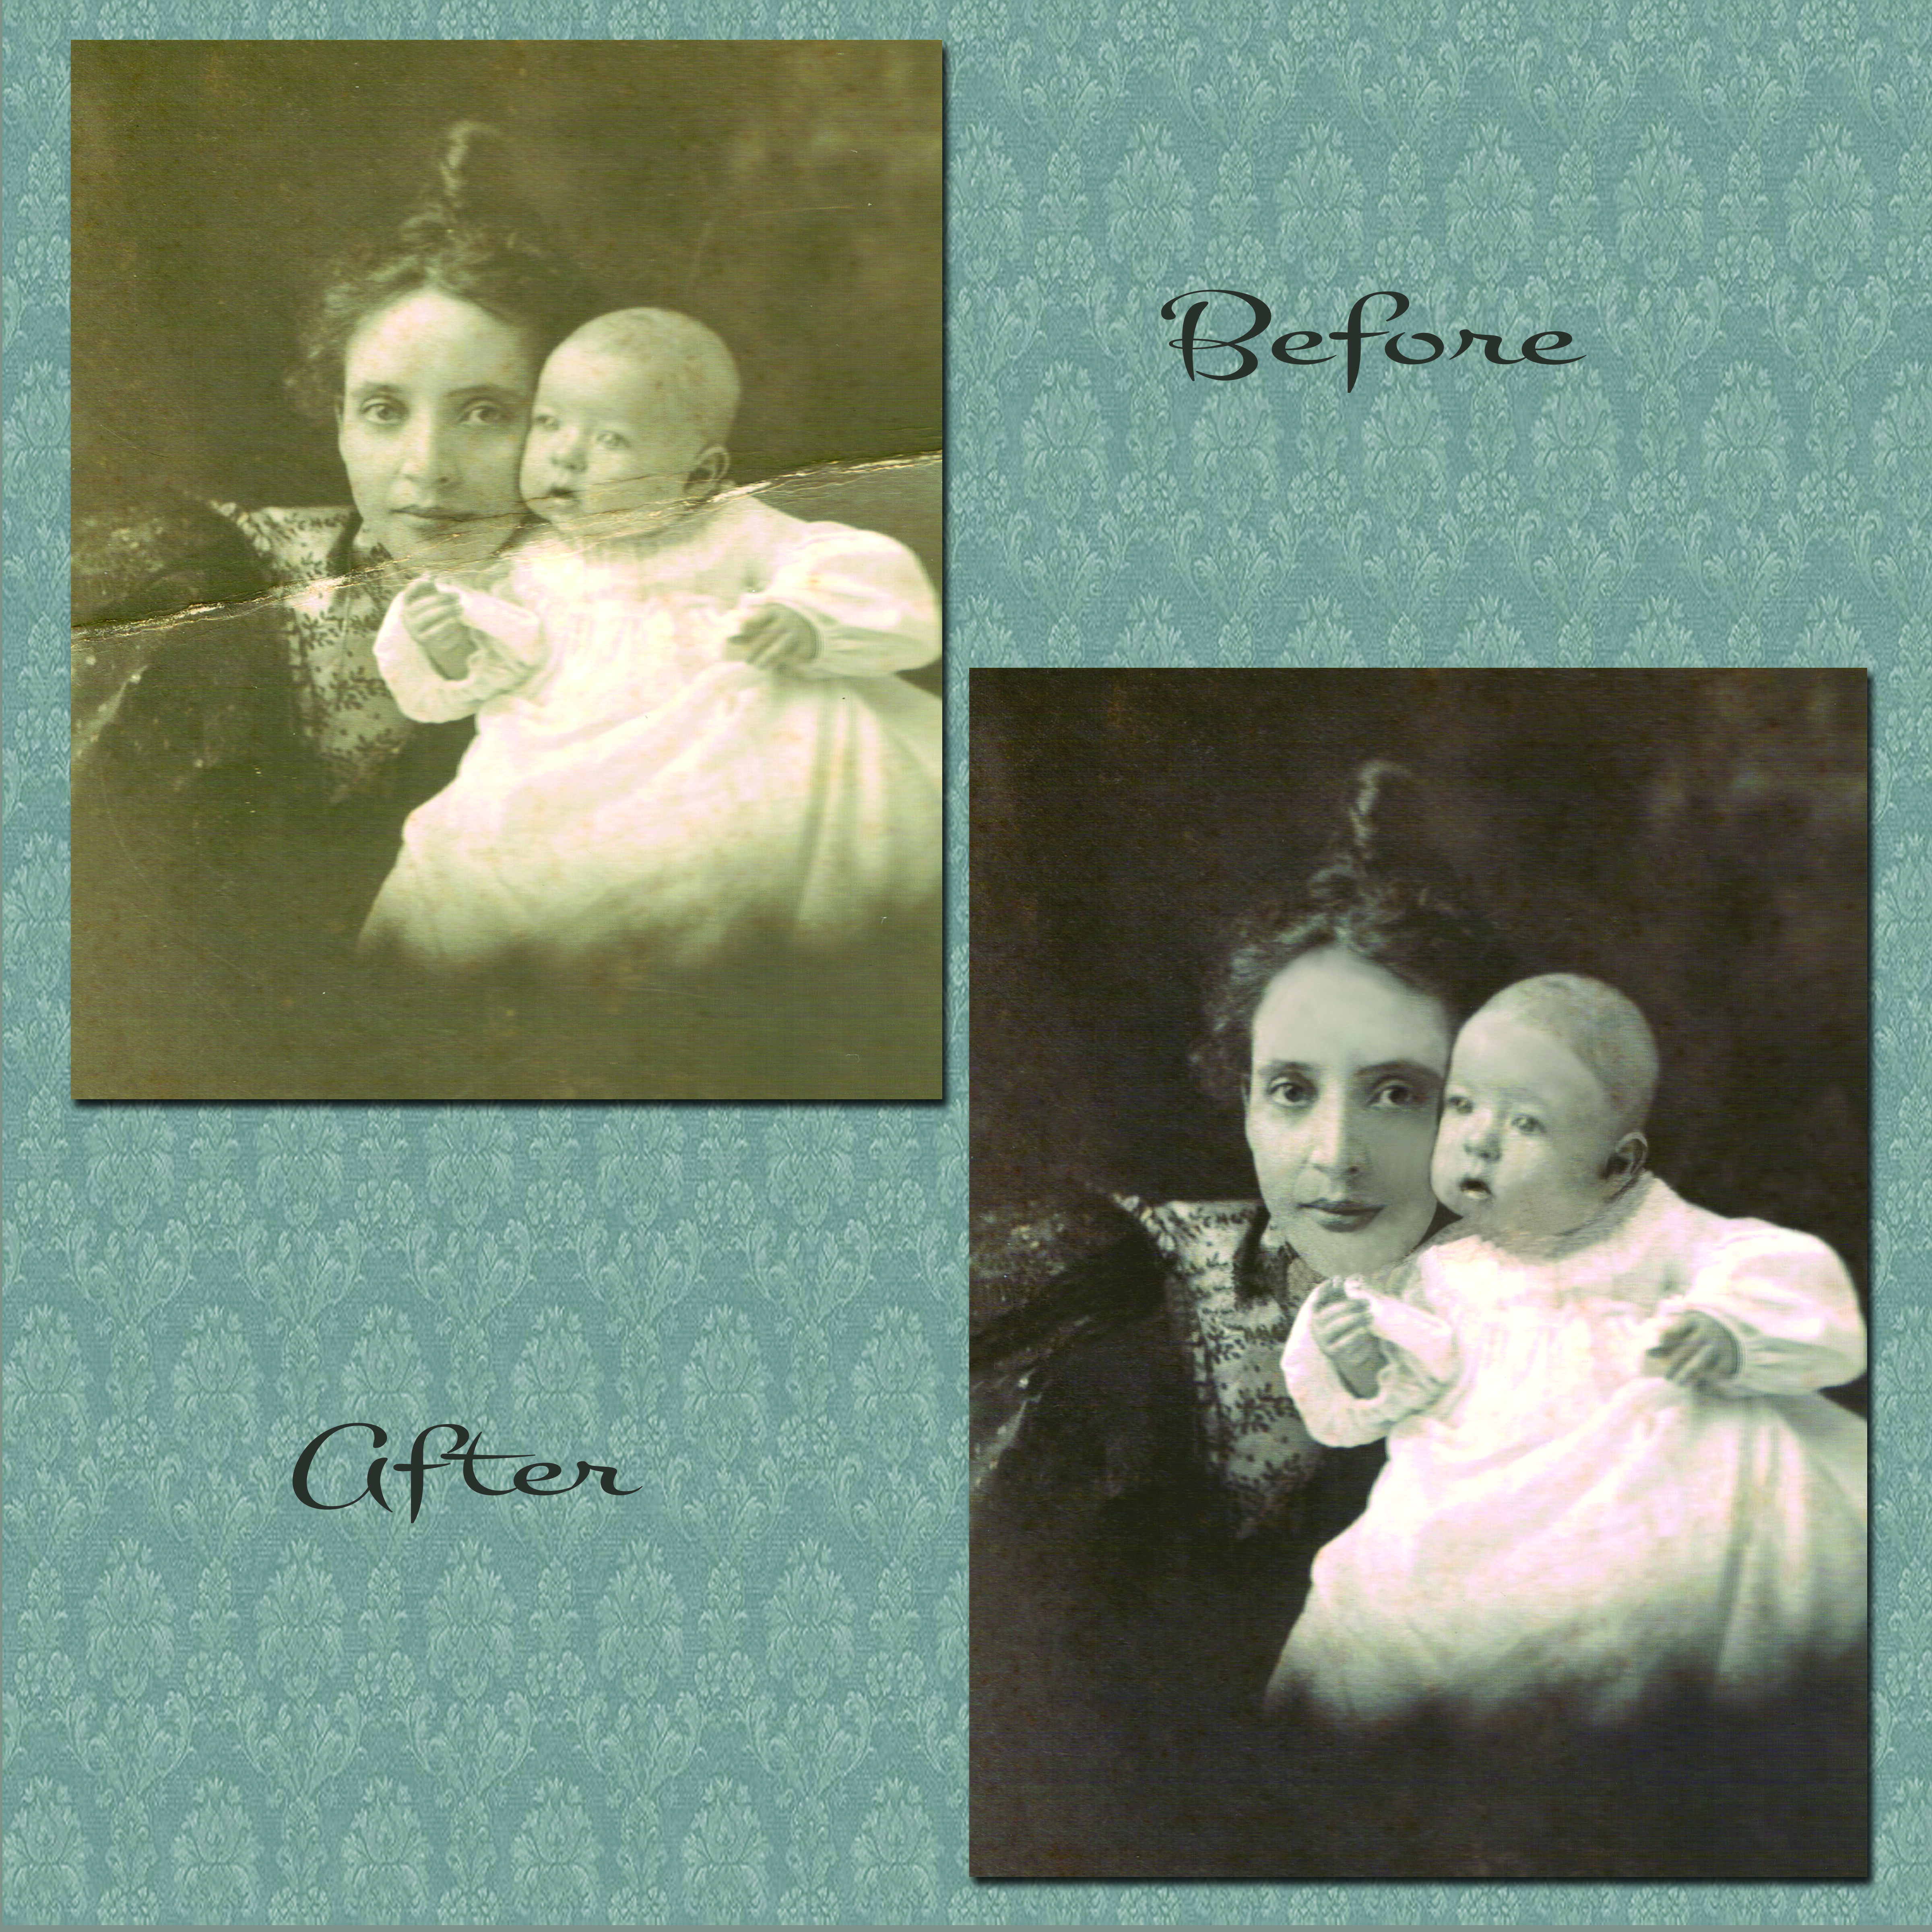 A before and after photo restoration. Done by Dreamcatcher Design Studio